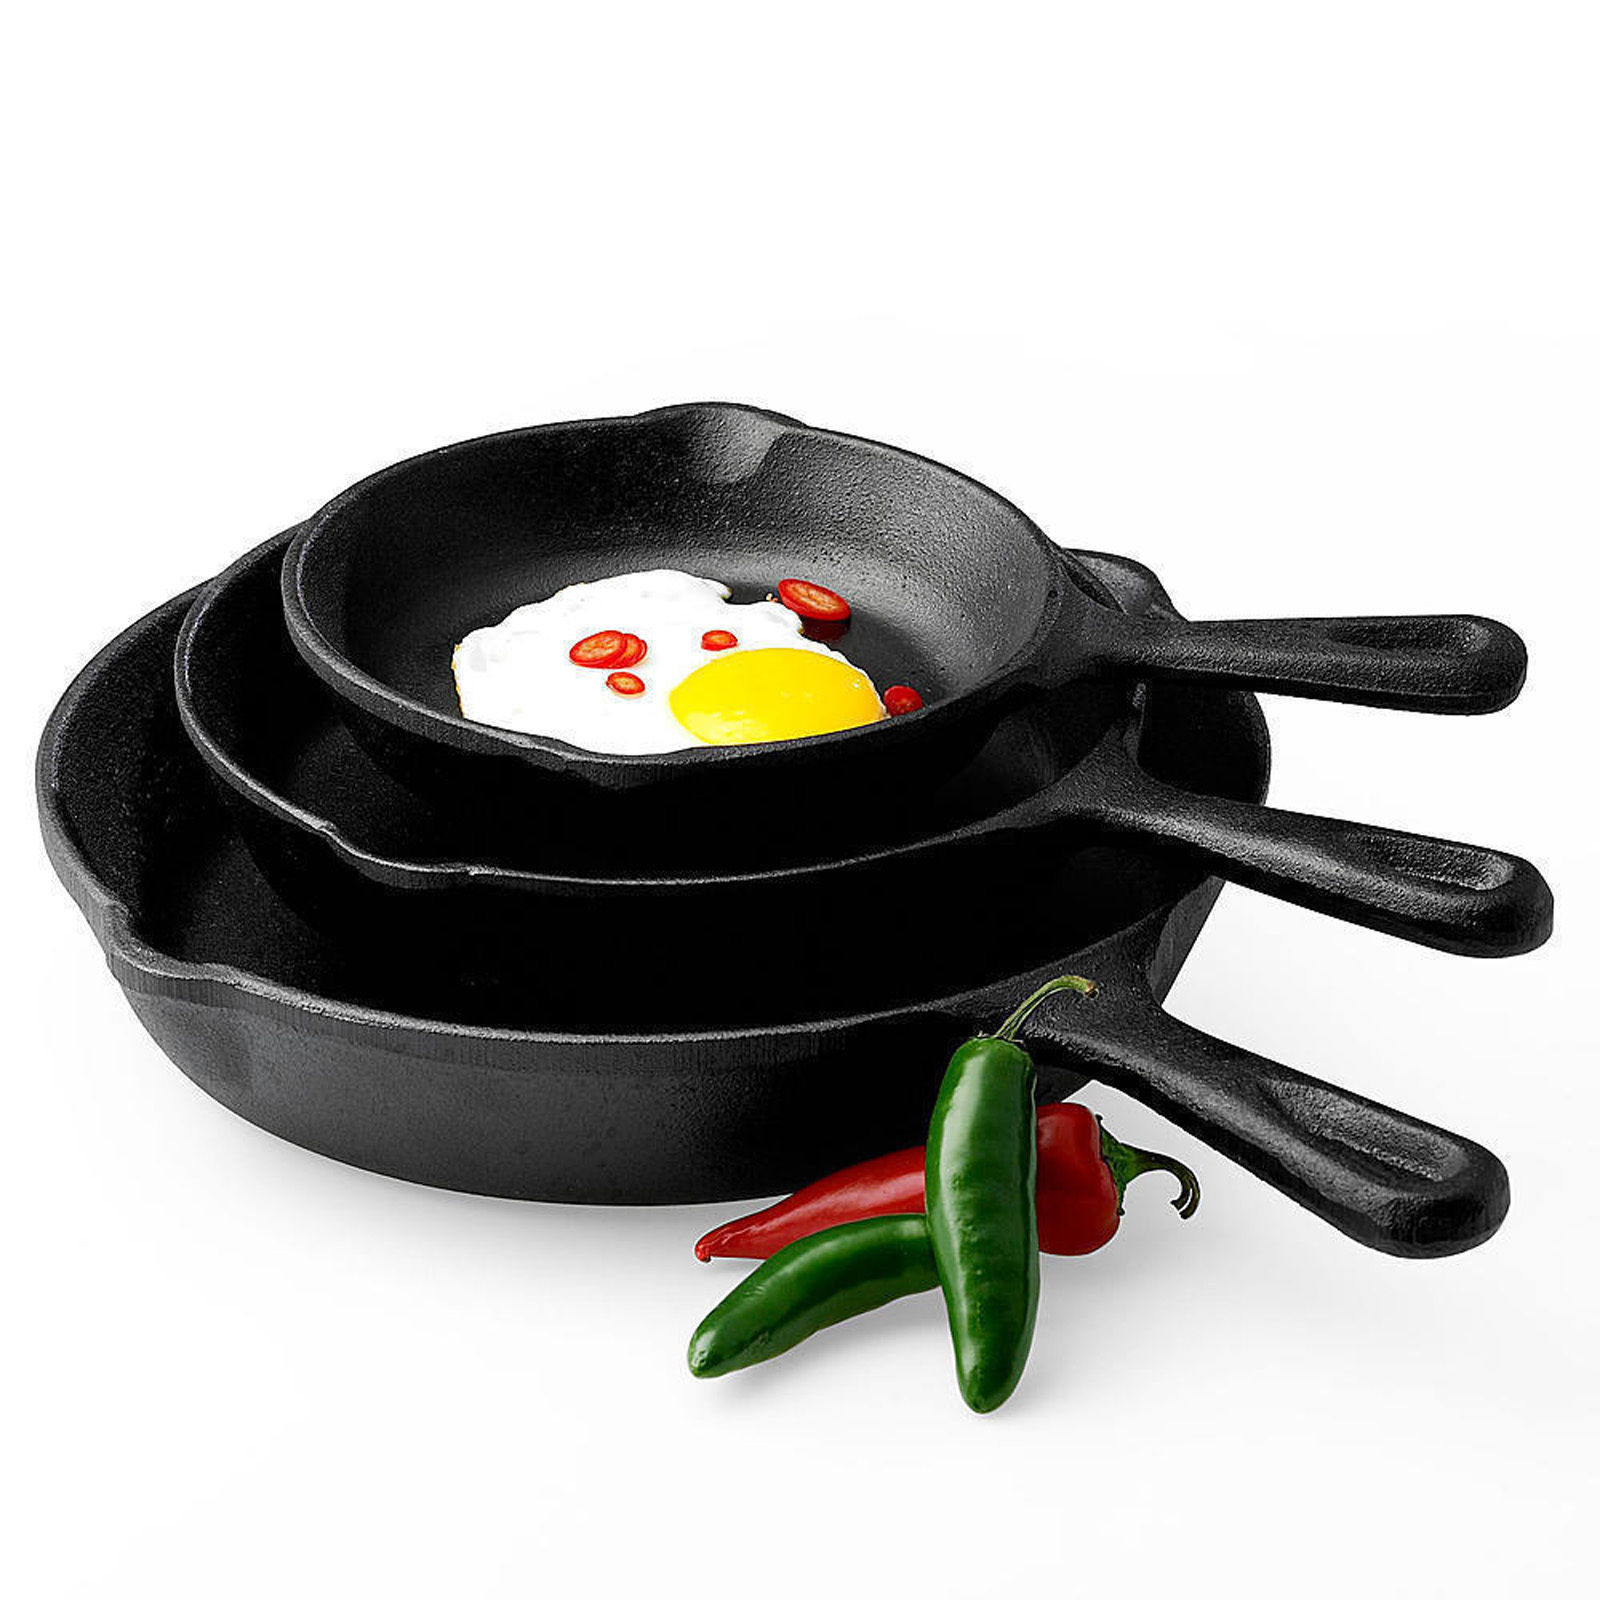 3pcs Pre-seasoned Cast Iron Skillet Set Stove Oven Fry Pan Pots Cookware Cooking